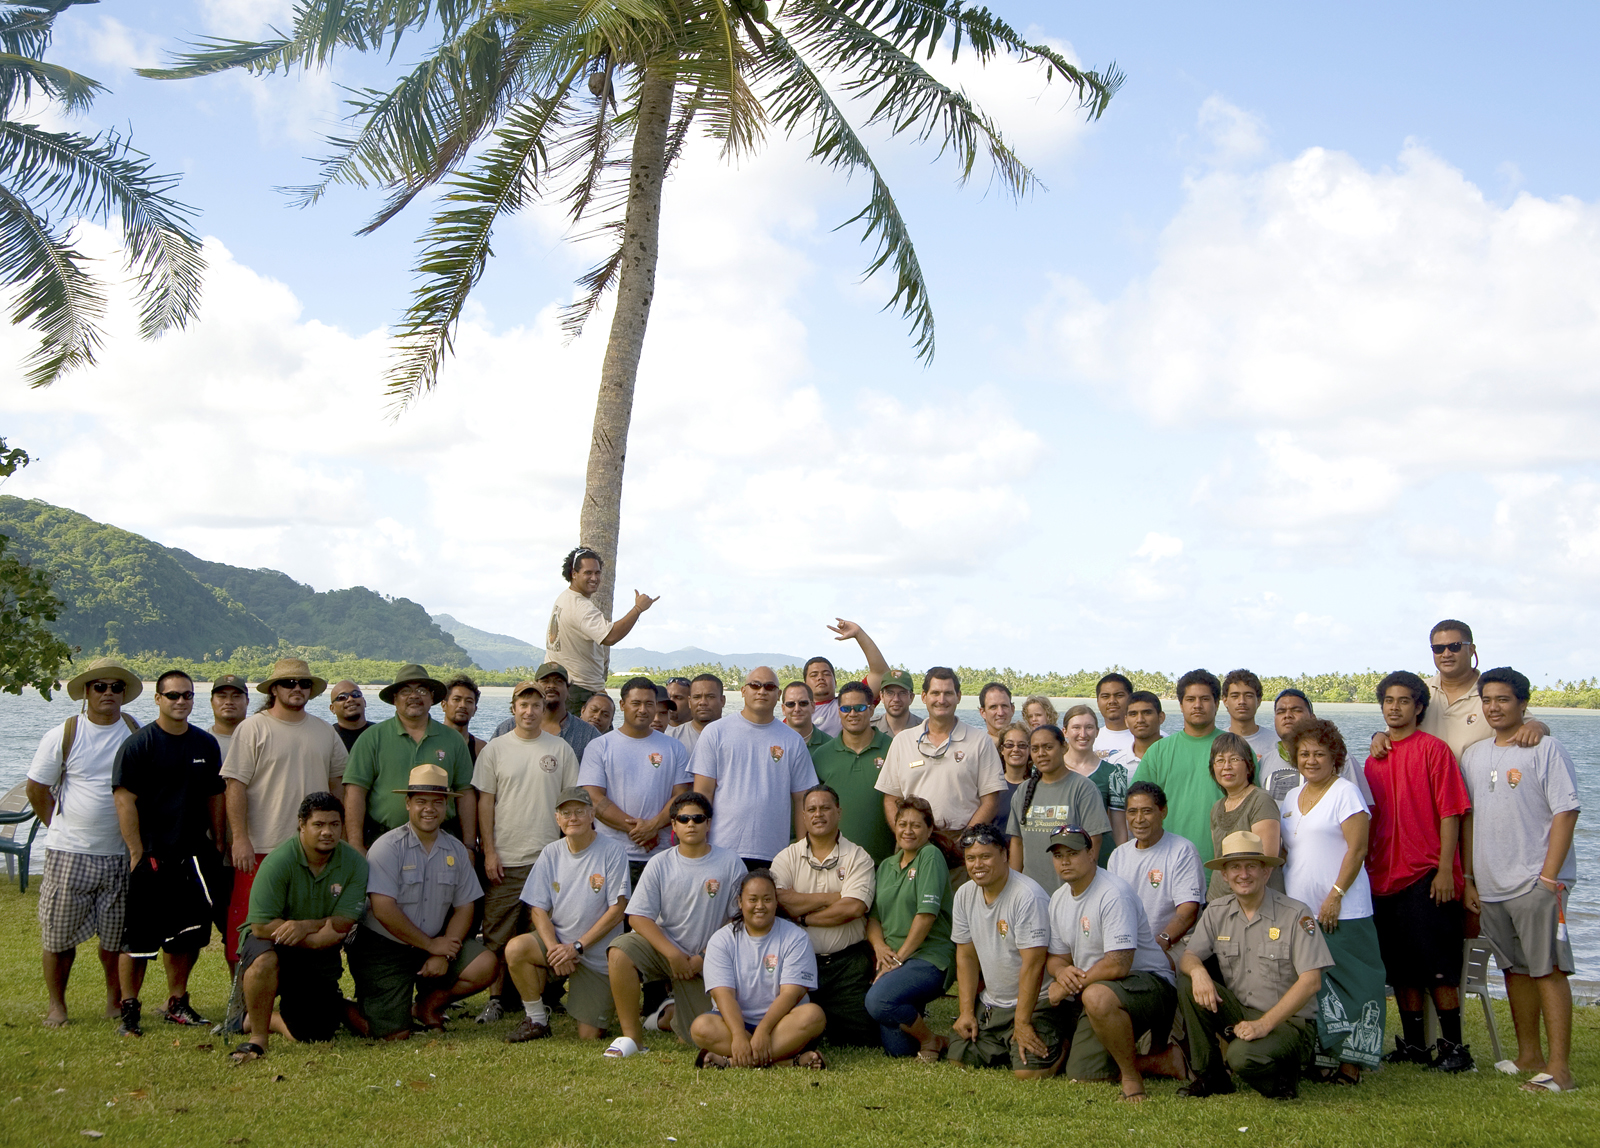 Photo of the National Park of American Samoa's staff.